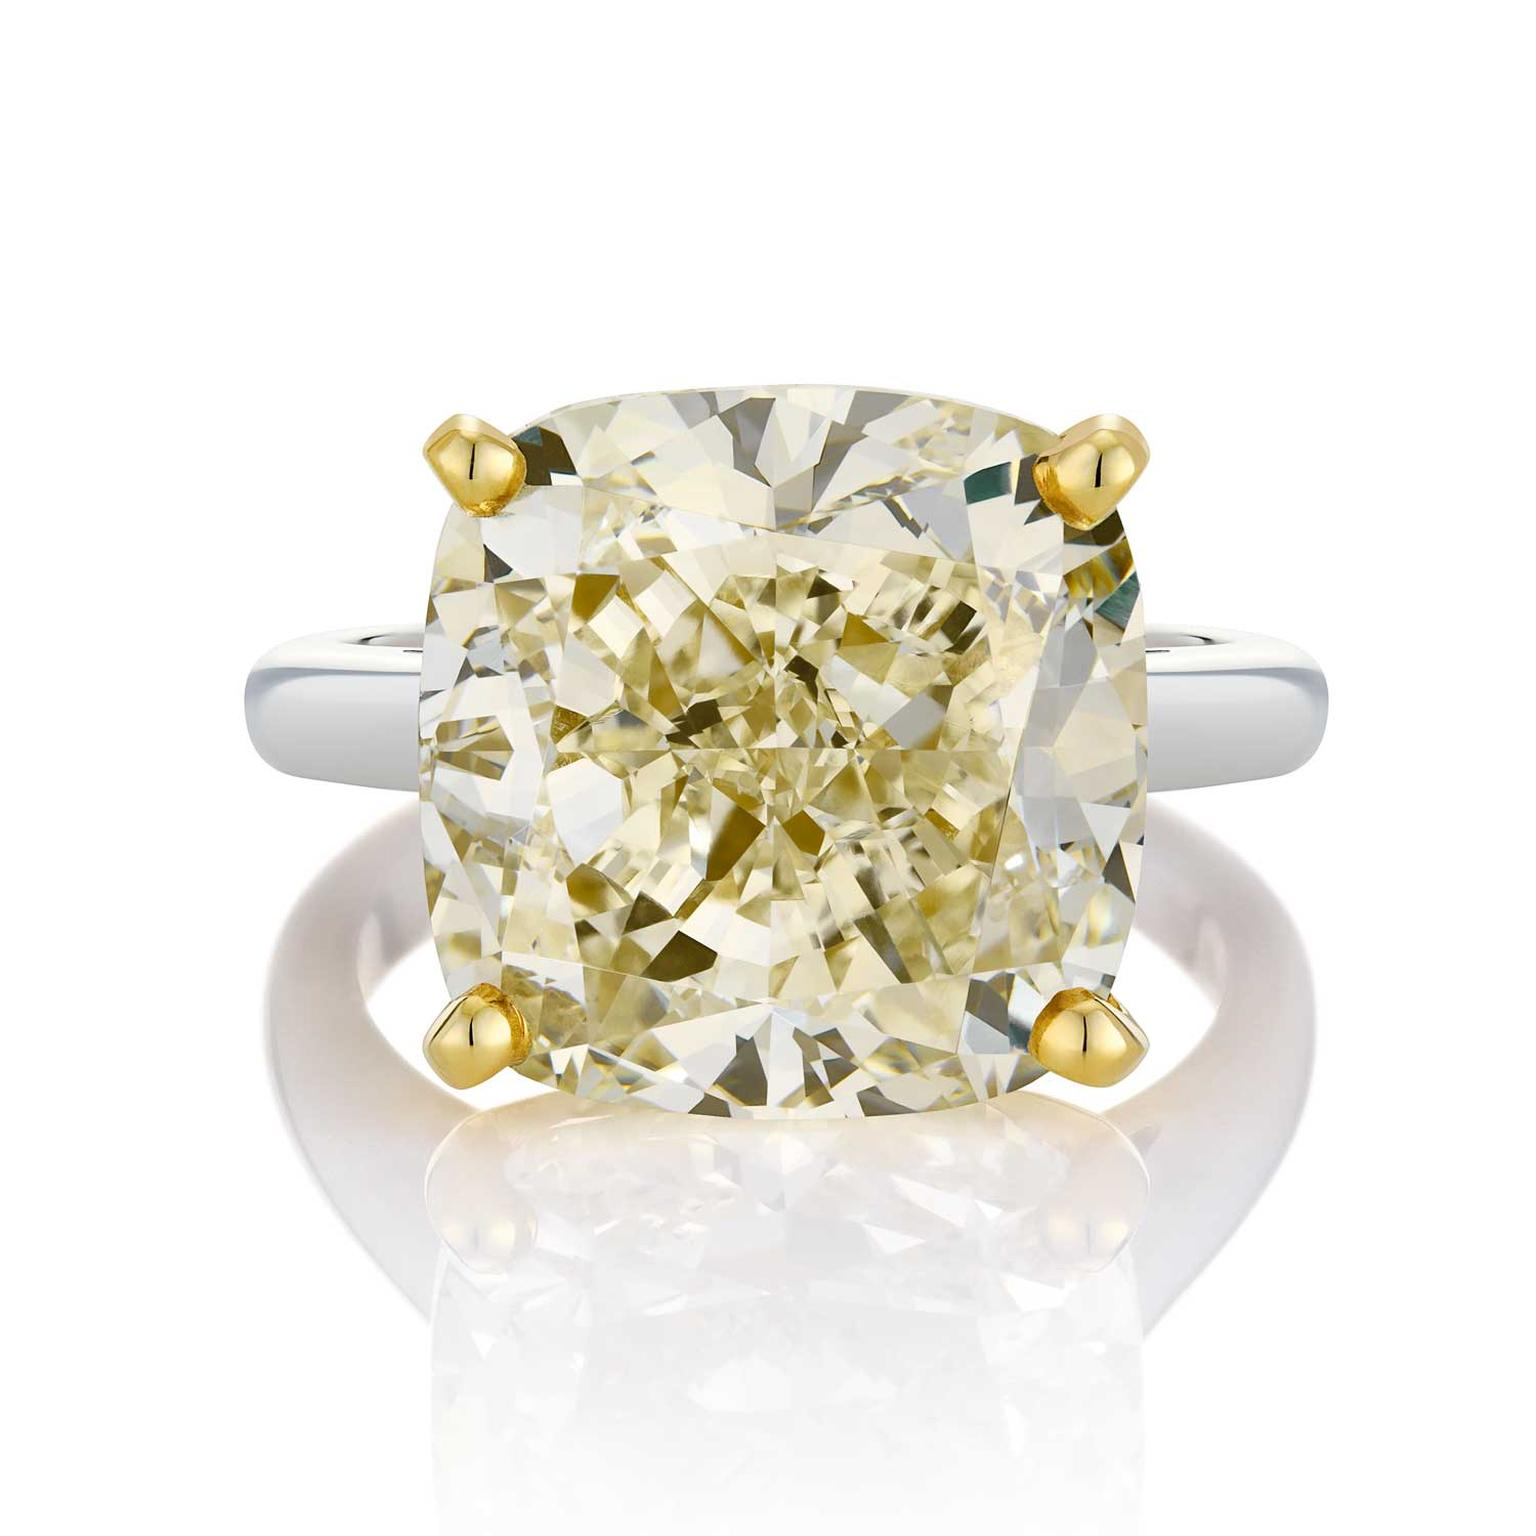 14.28ct cushion-cut X colour white diamond from De Beers 1888 Master Diamonds collection